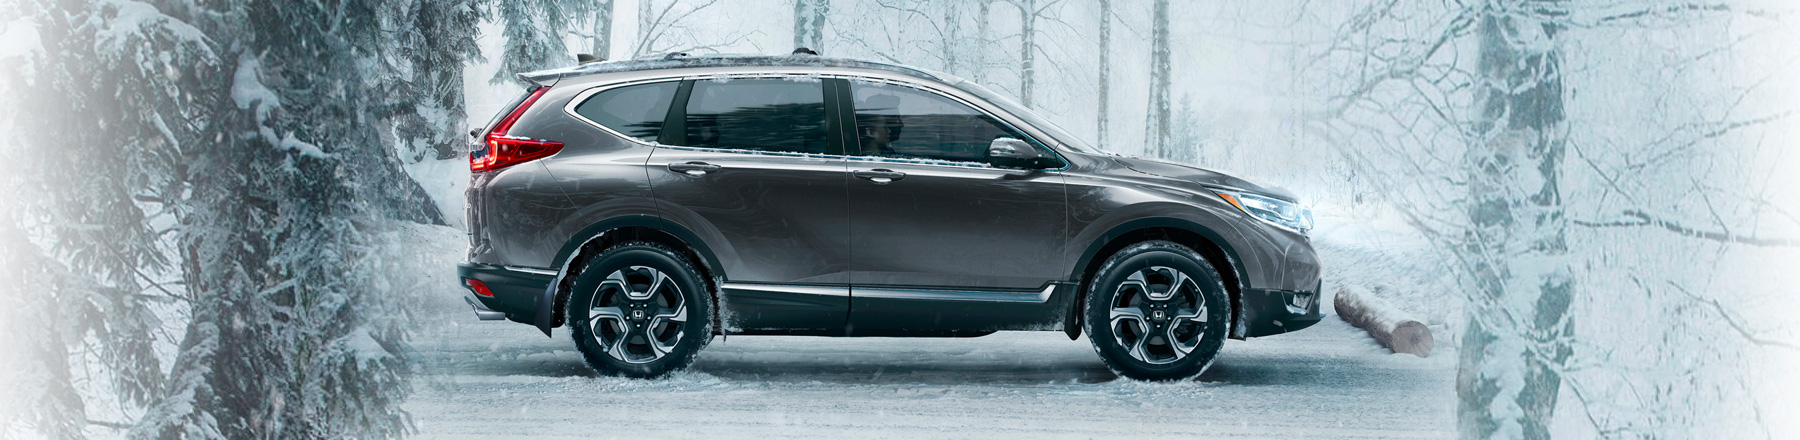 2019 honda cr-v from side profile